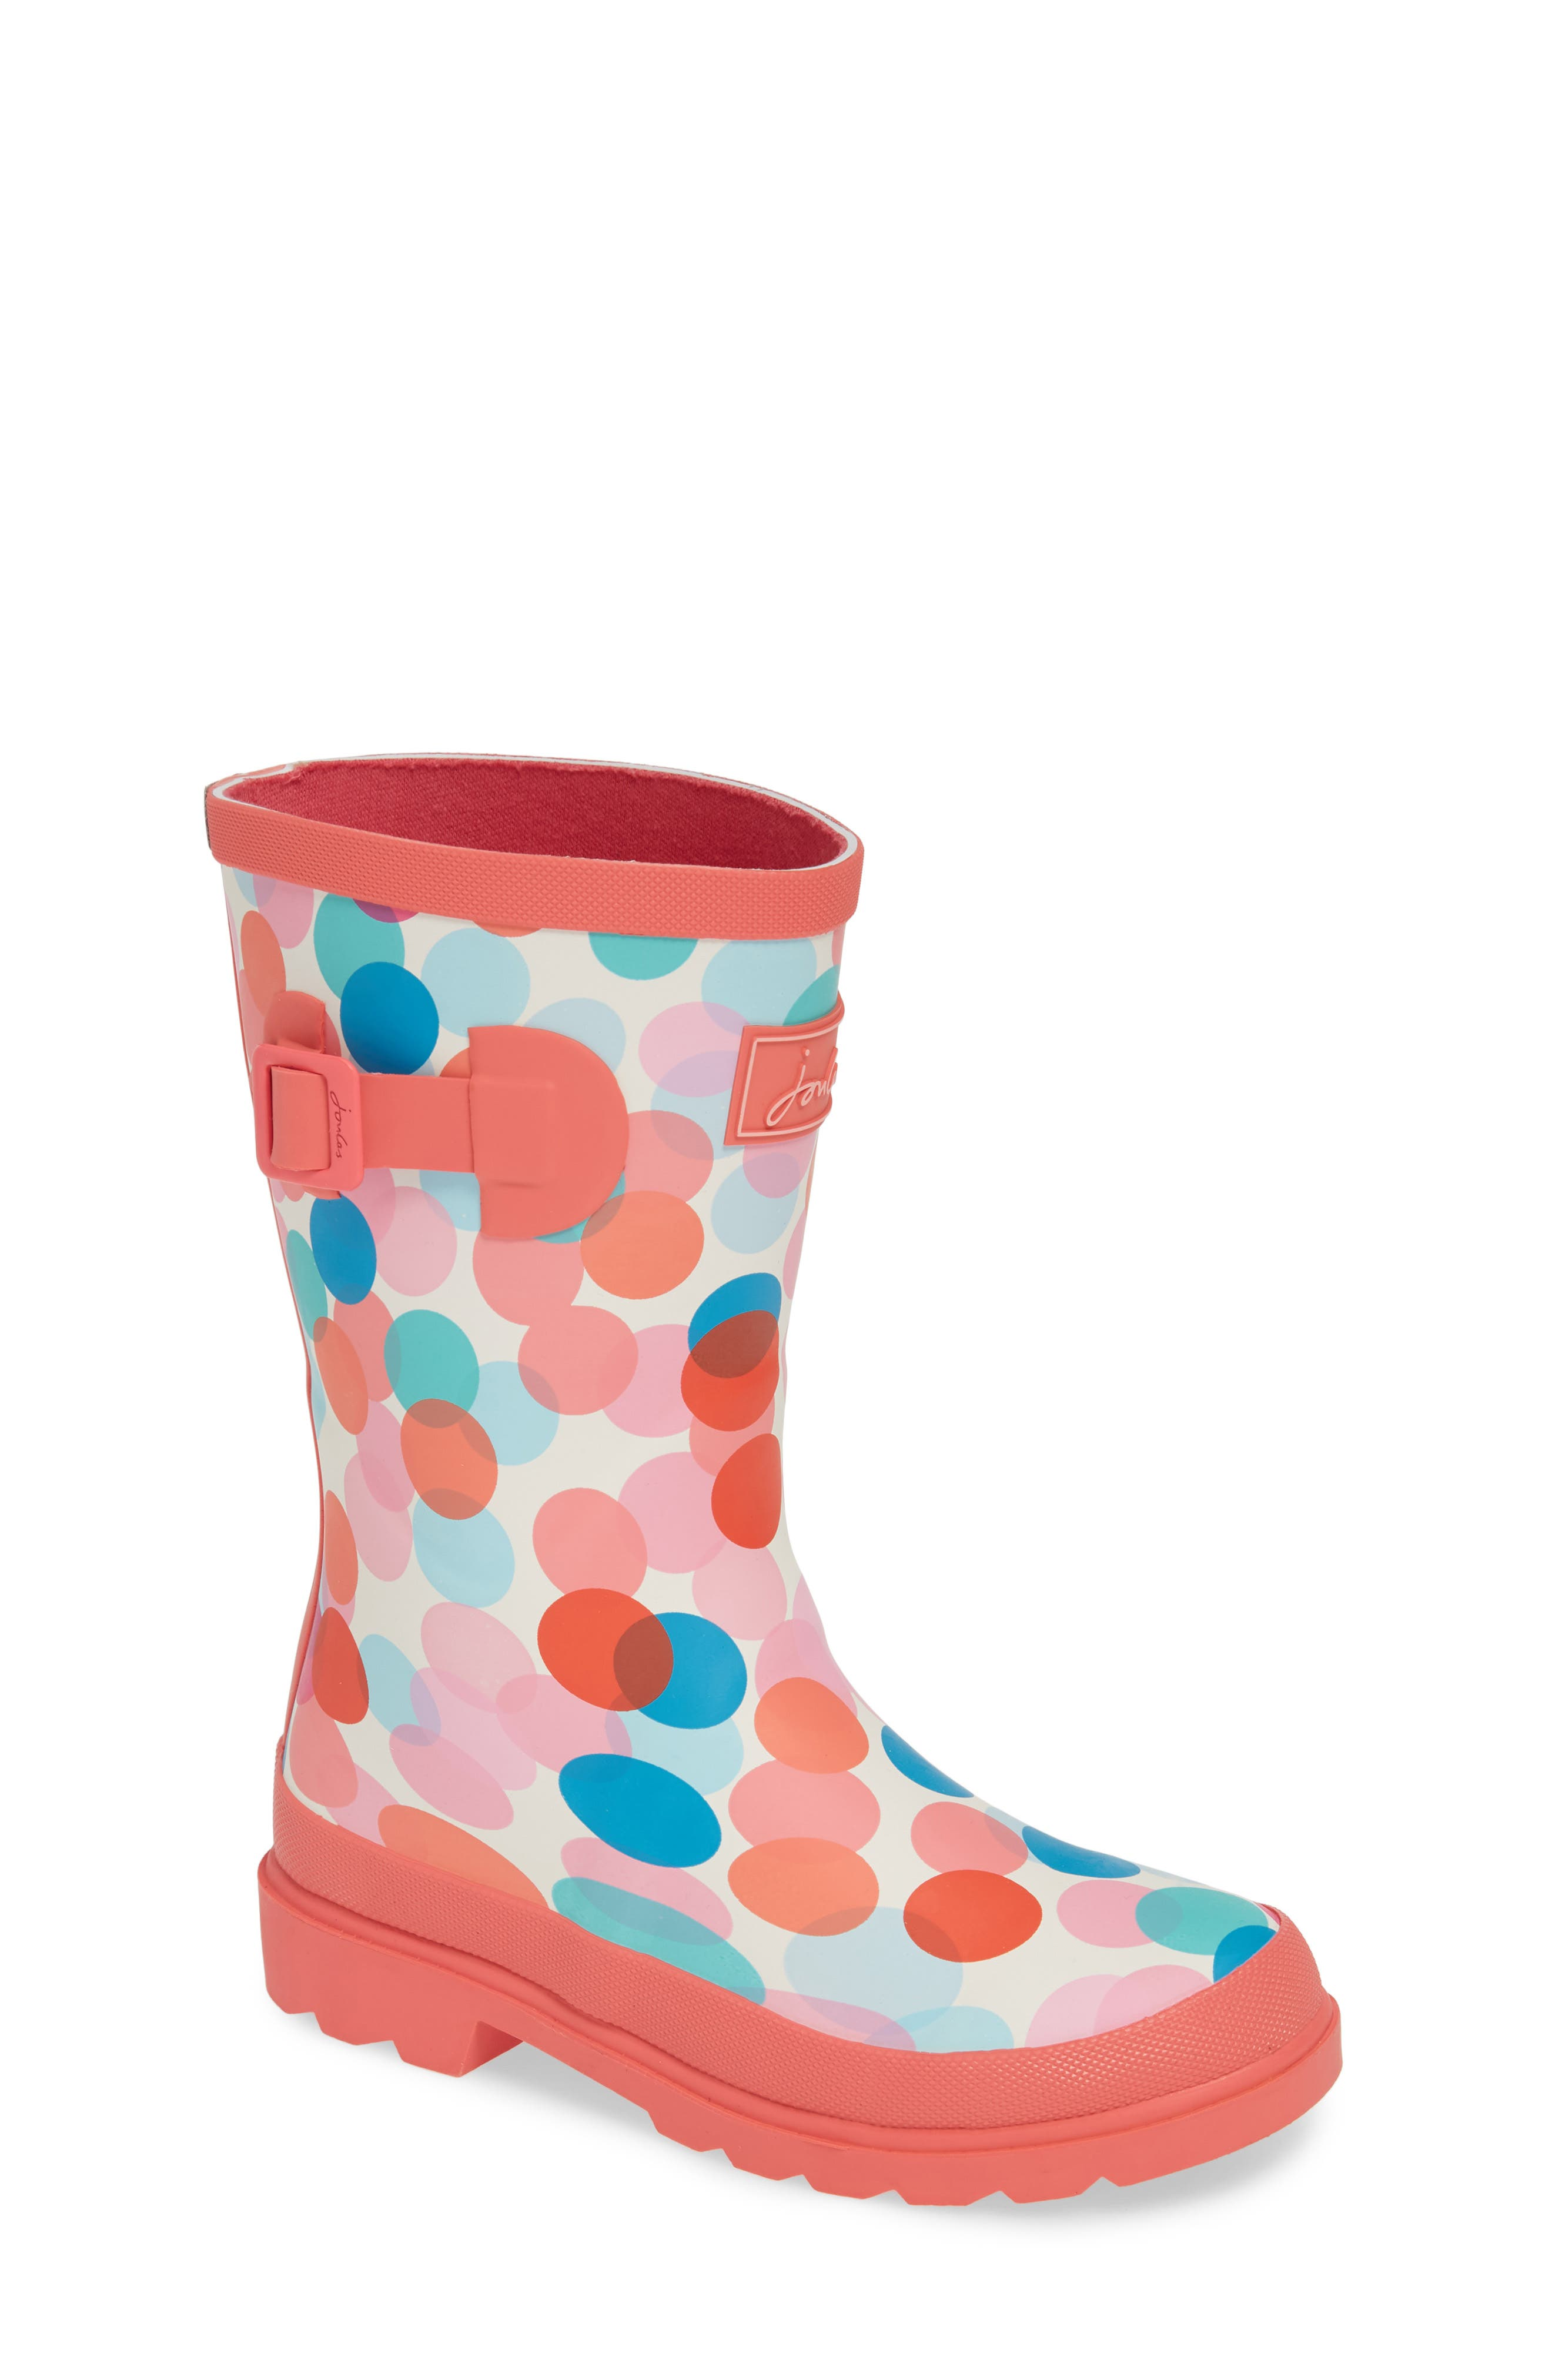 JOULES Mid Height Print Welly Waterproof Rain Boot, Main, color, CREAM FAIRY DITSY